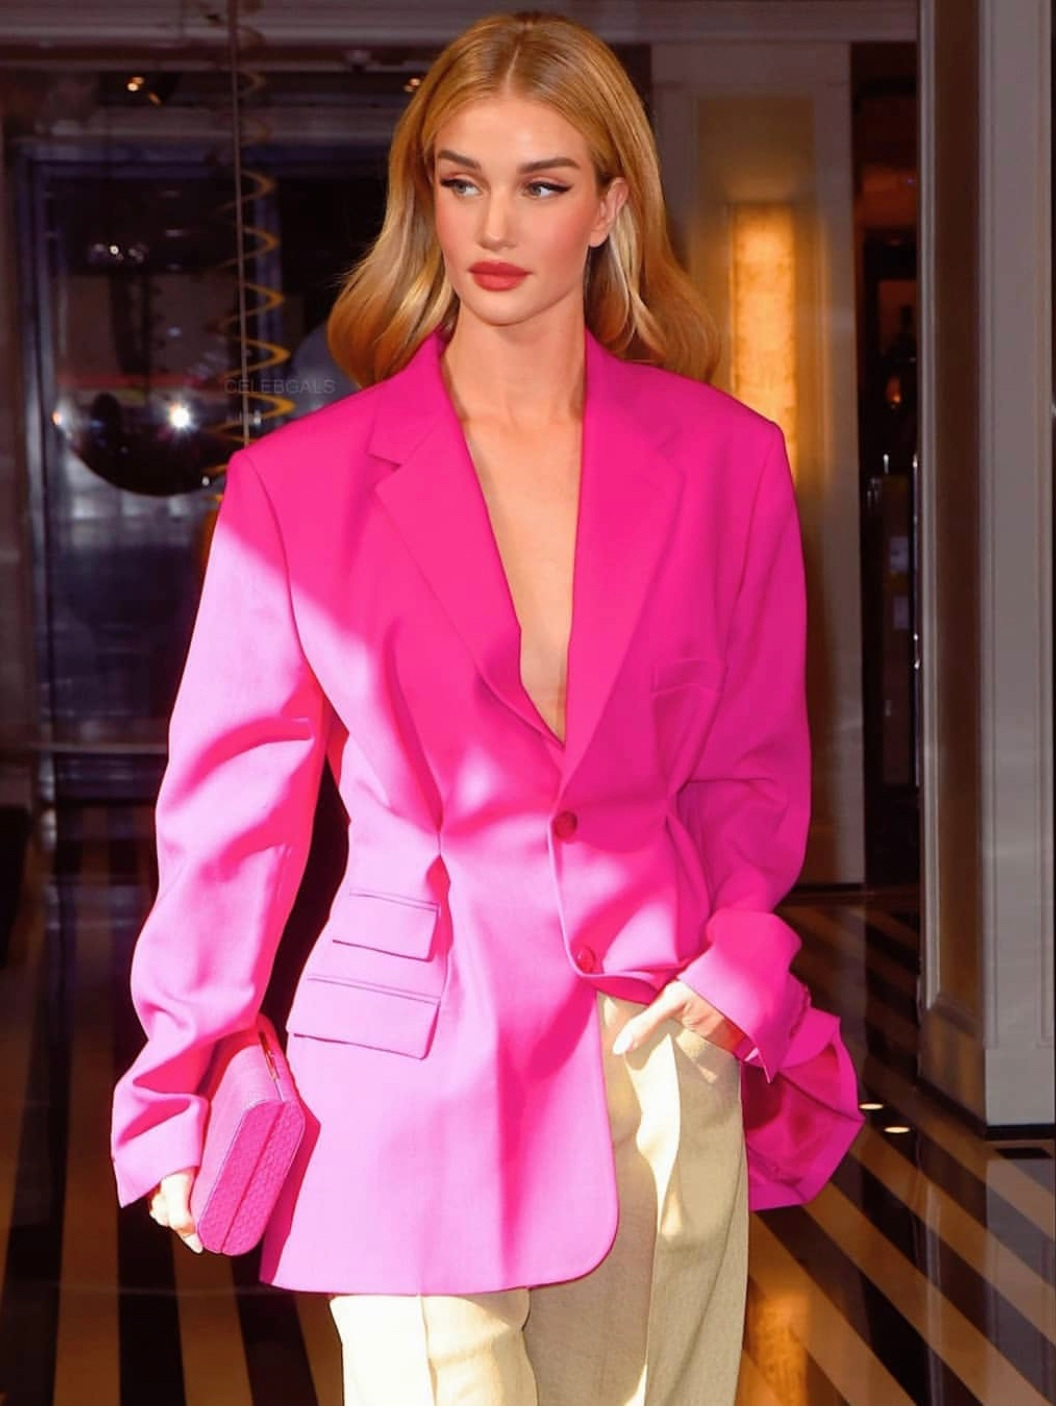 Rosie Huntington-Whiteley  with the ODP Toscano Clutch in New York City